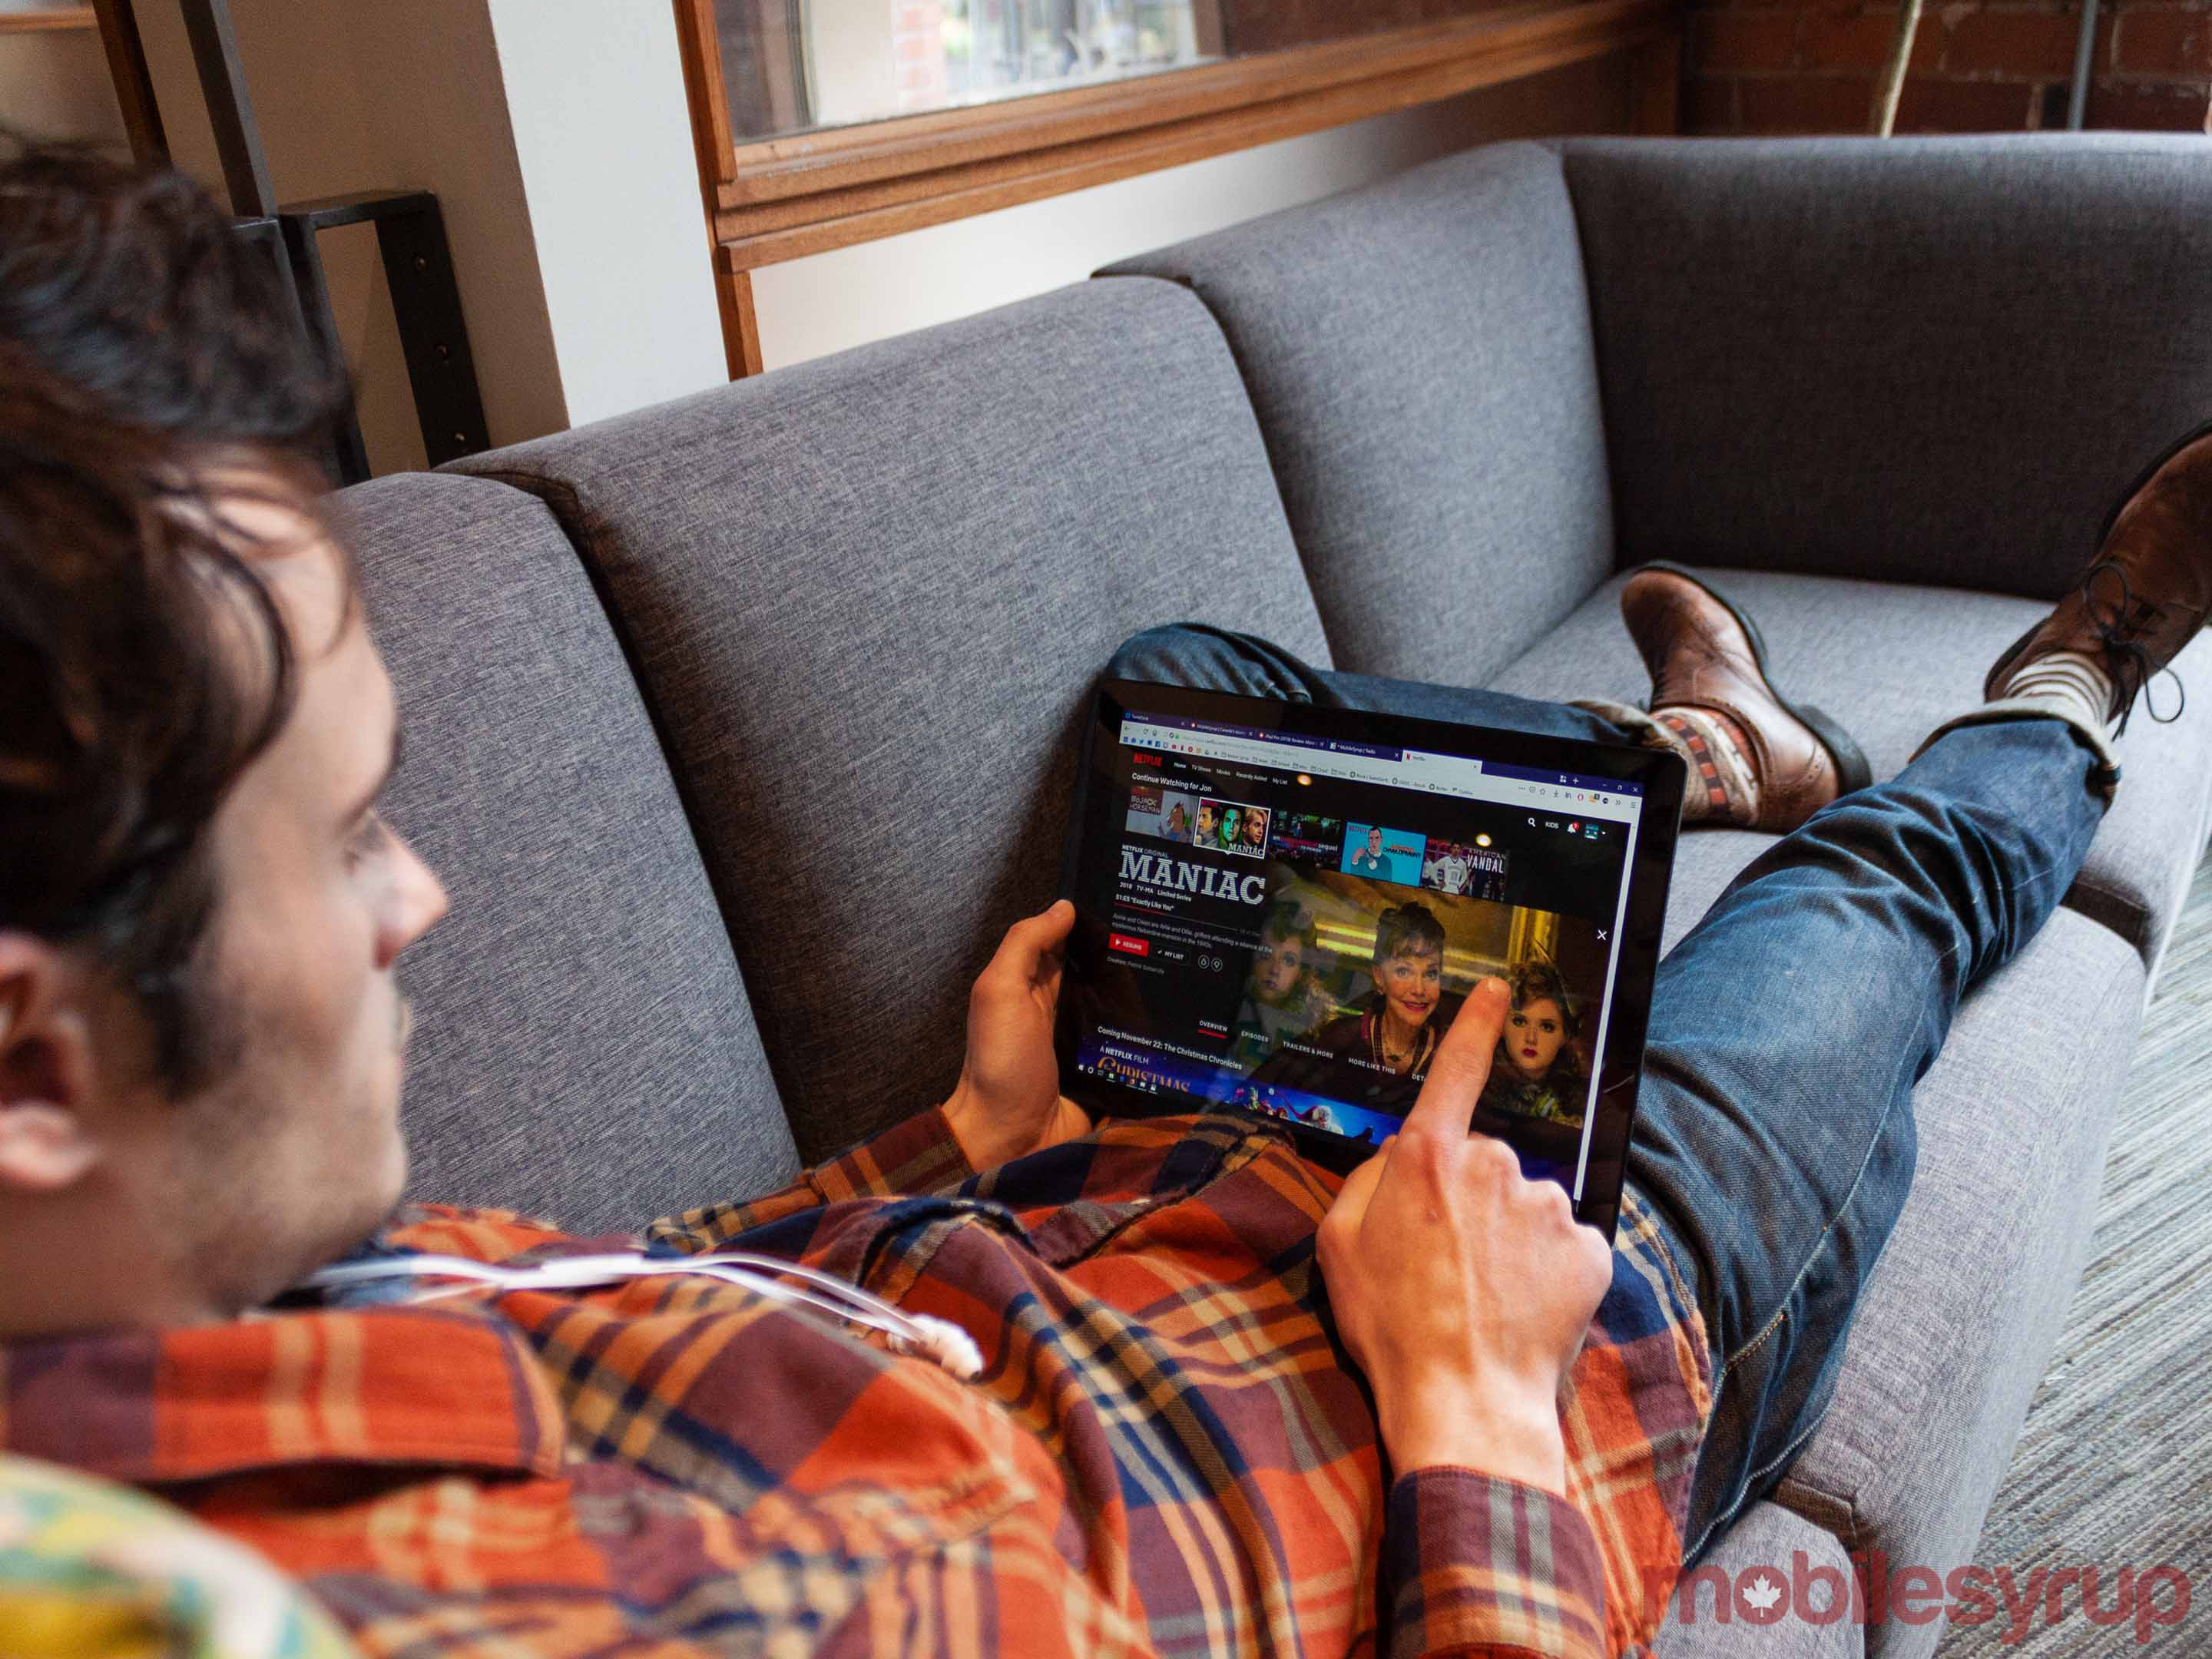 Surface Pro 6 makes for a solid tablet